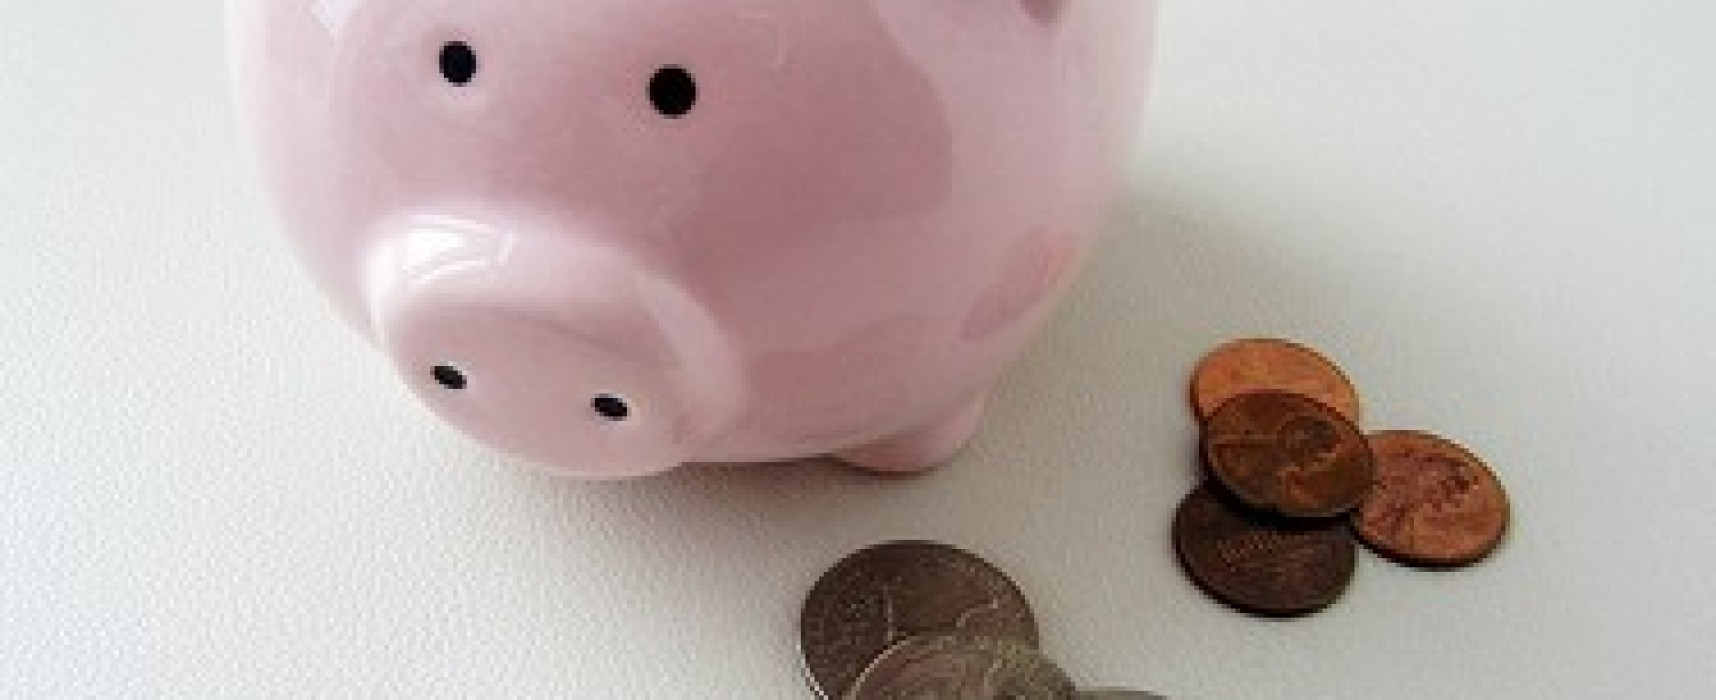 Tips To Managing Your Daily Finances